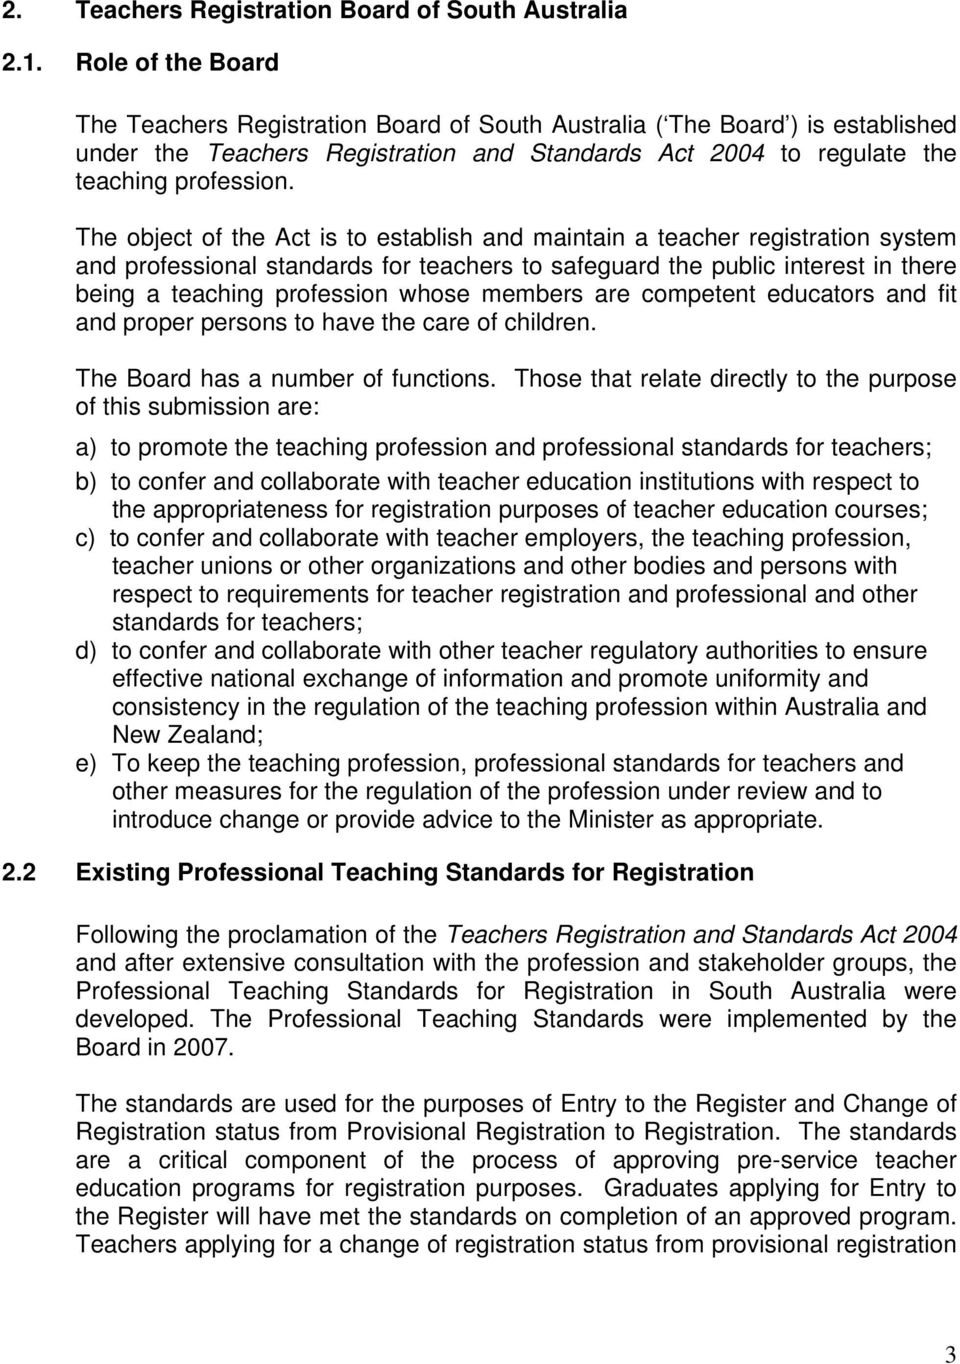 The object of the Act is to establish and maintain a teacher registration system and professional standards for teachers to safeguard the public interest in there being a teaching profession whose